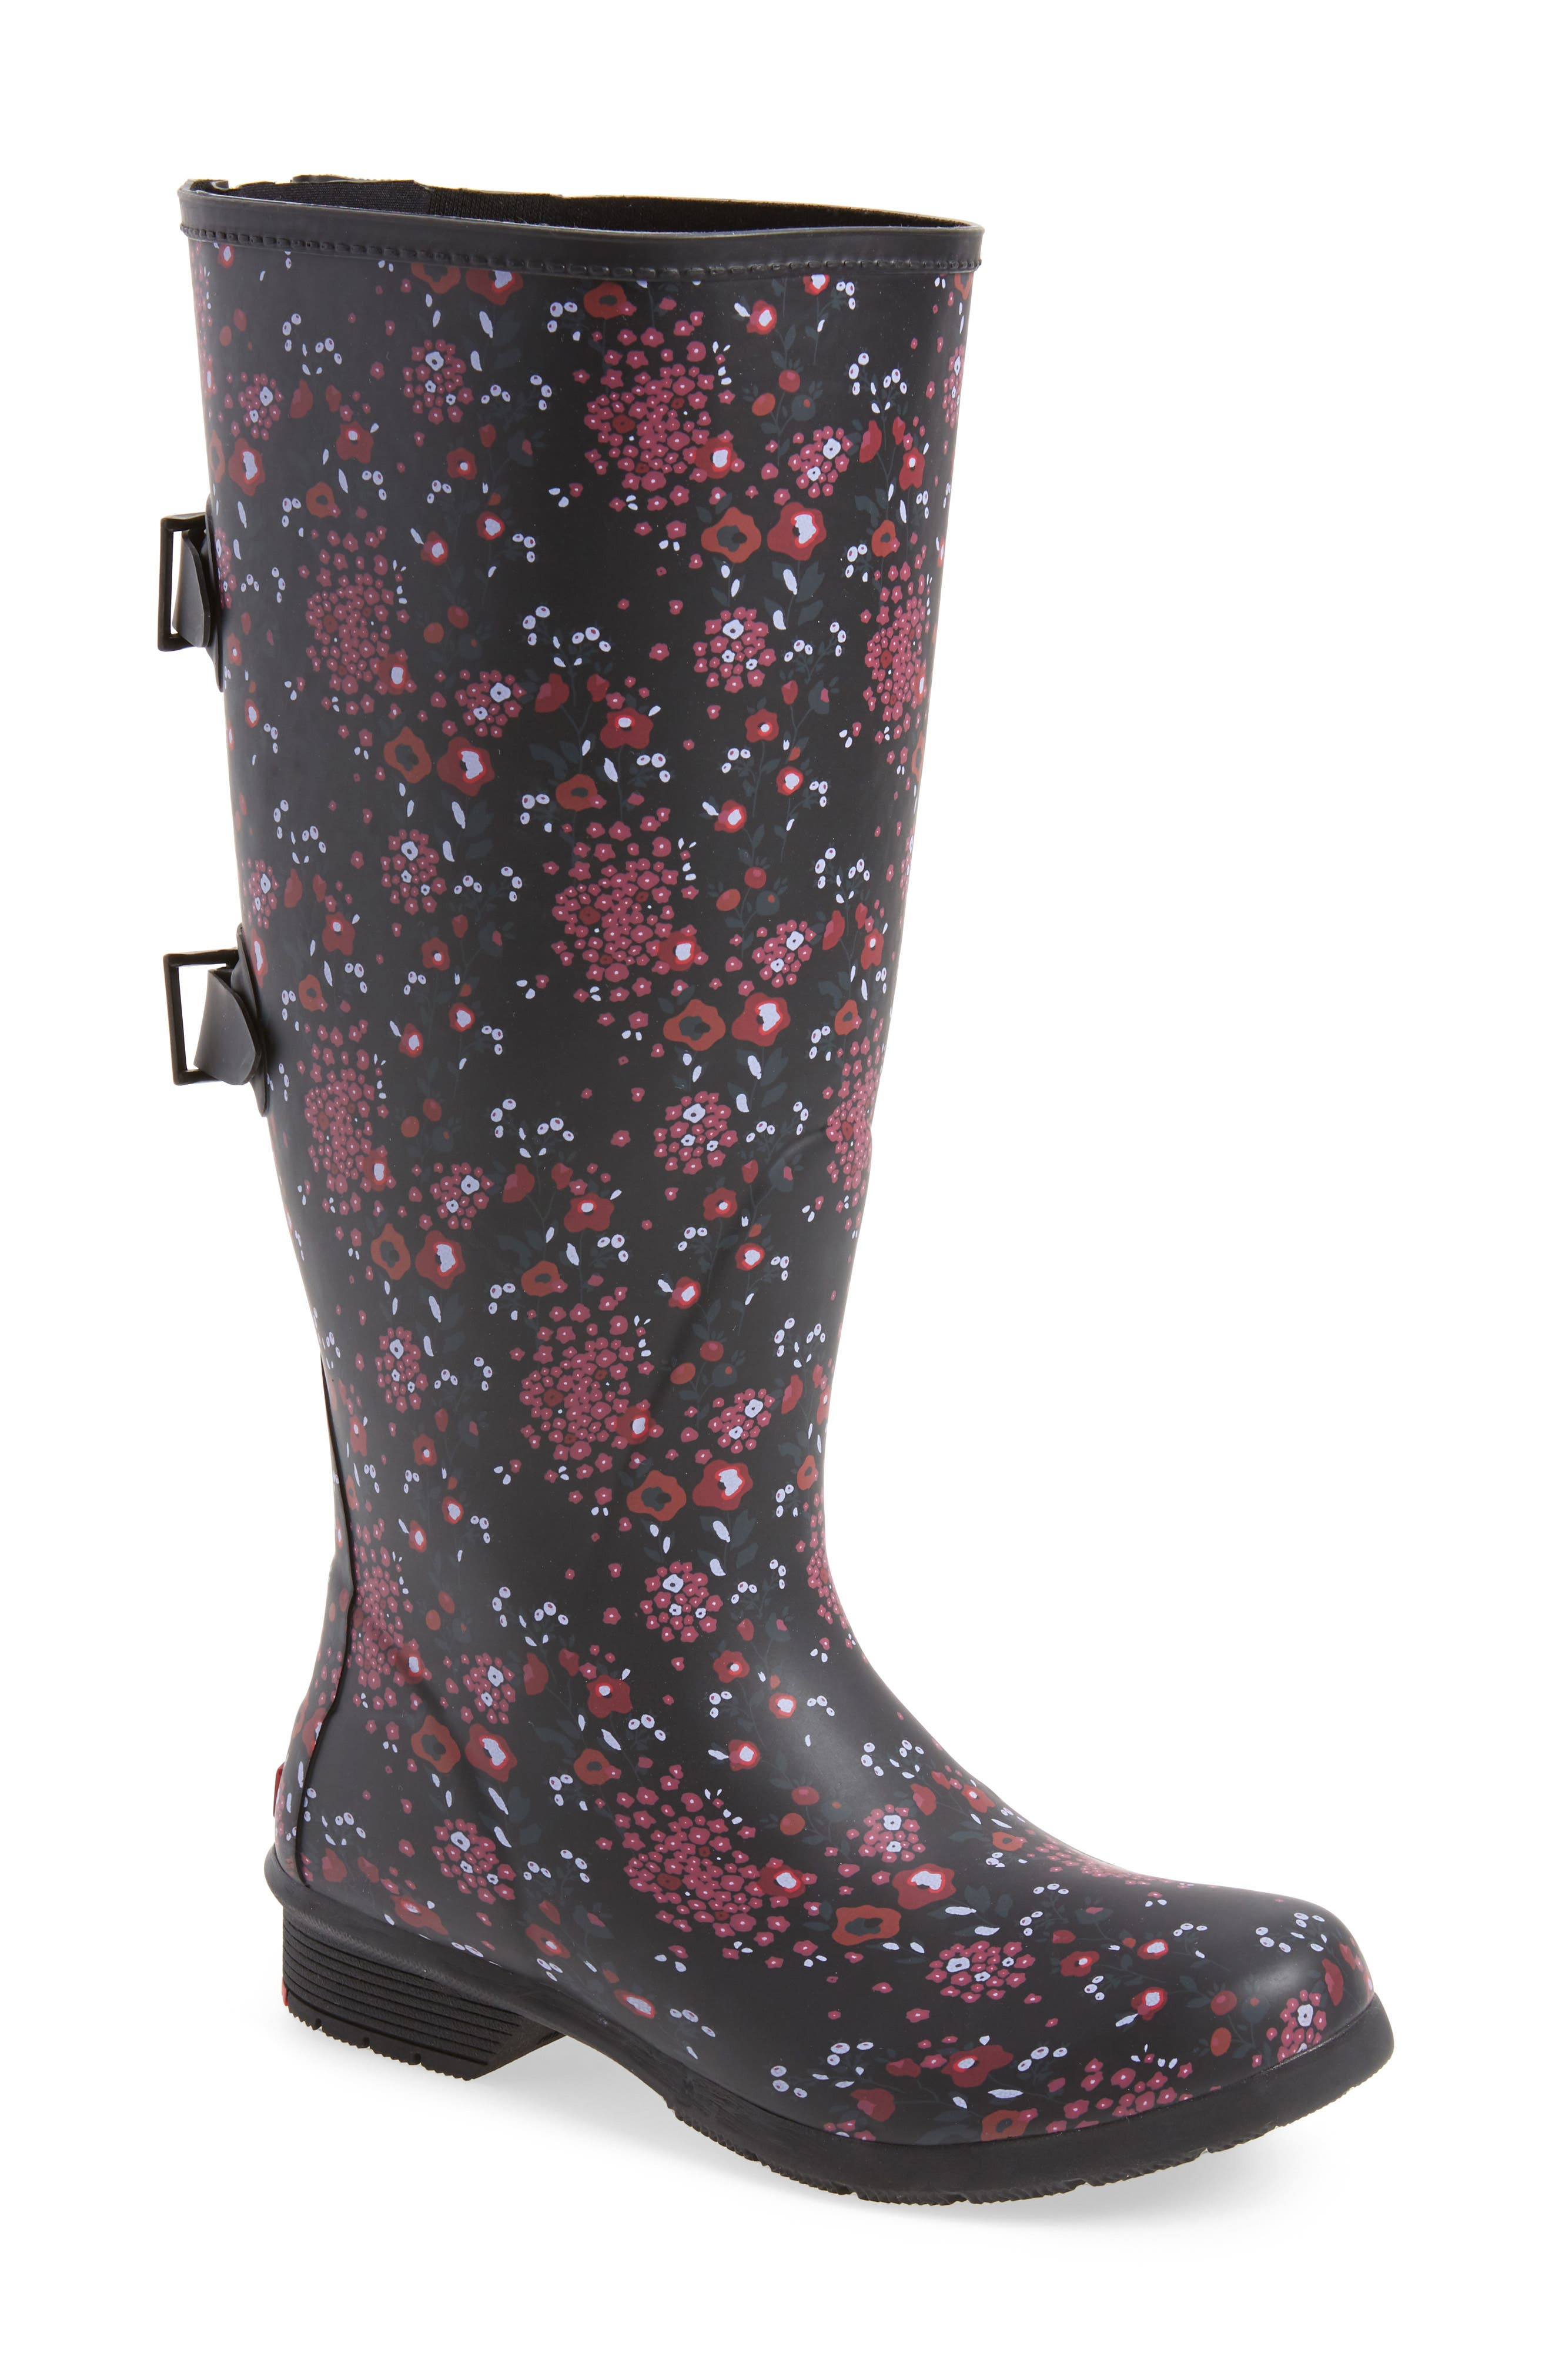 Alternate Image 1 Selected - Chooka Versa Rain Boot (Women) (Wide Calf)